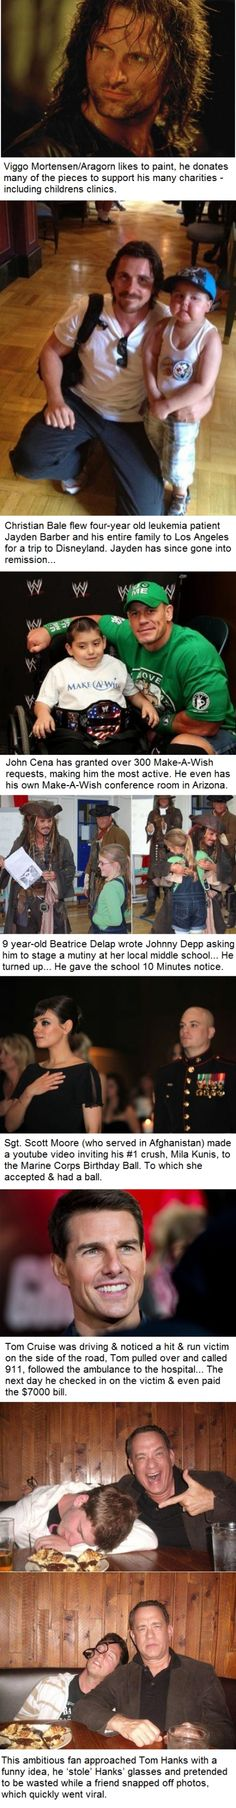 For when your faith in humanity needs to be restored. Haha, Johnny Depp